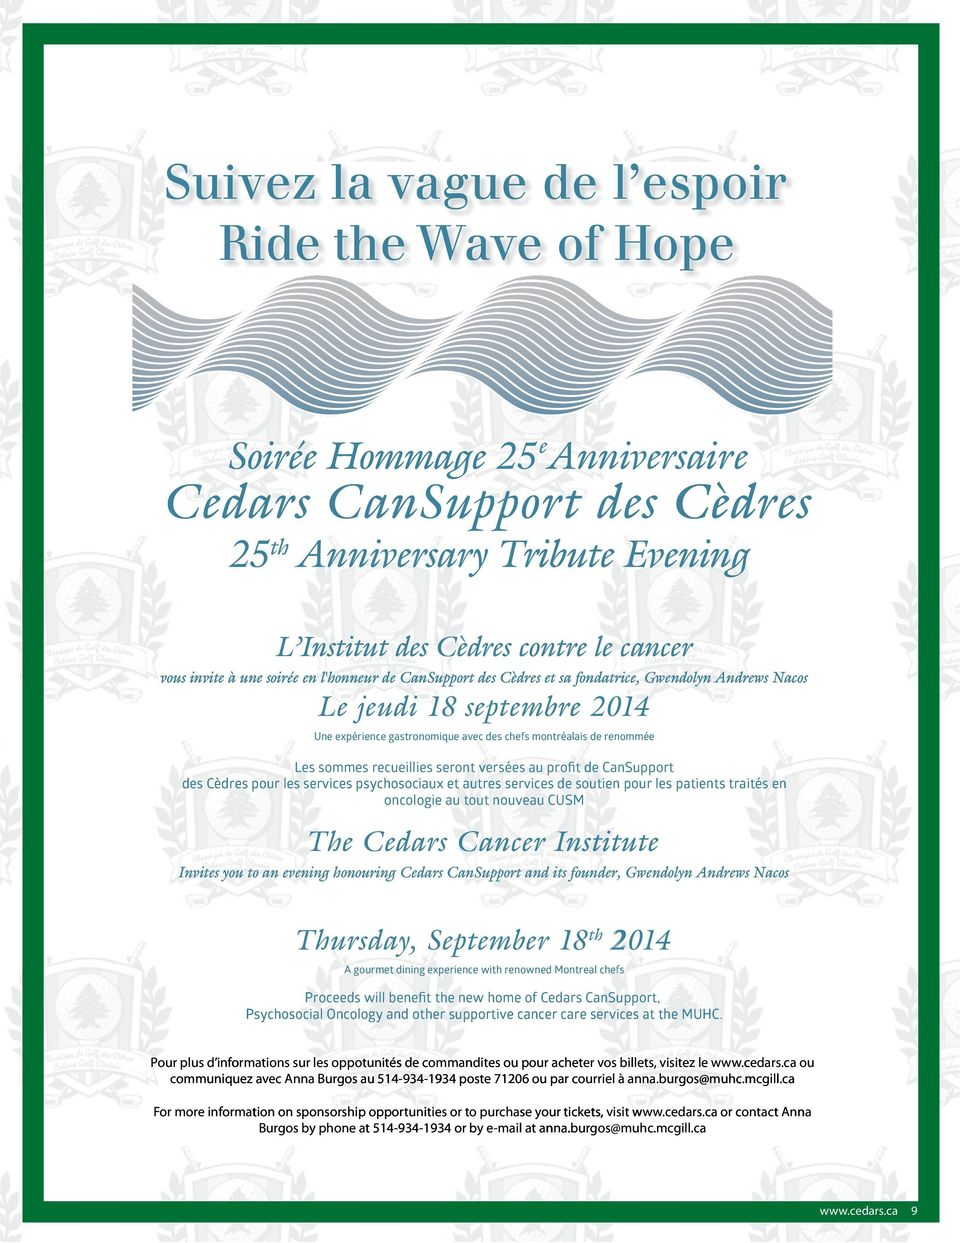 CanSupport des Cèdres pour les services psychosociaux et autres services de soutien pour les patients traités en oncologie au tout nouveau CUSM The Cedars Cancer Institute Invites you to an evening